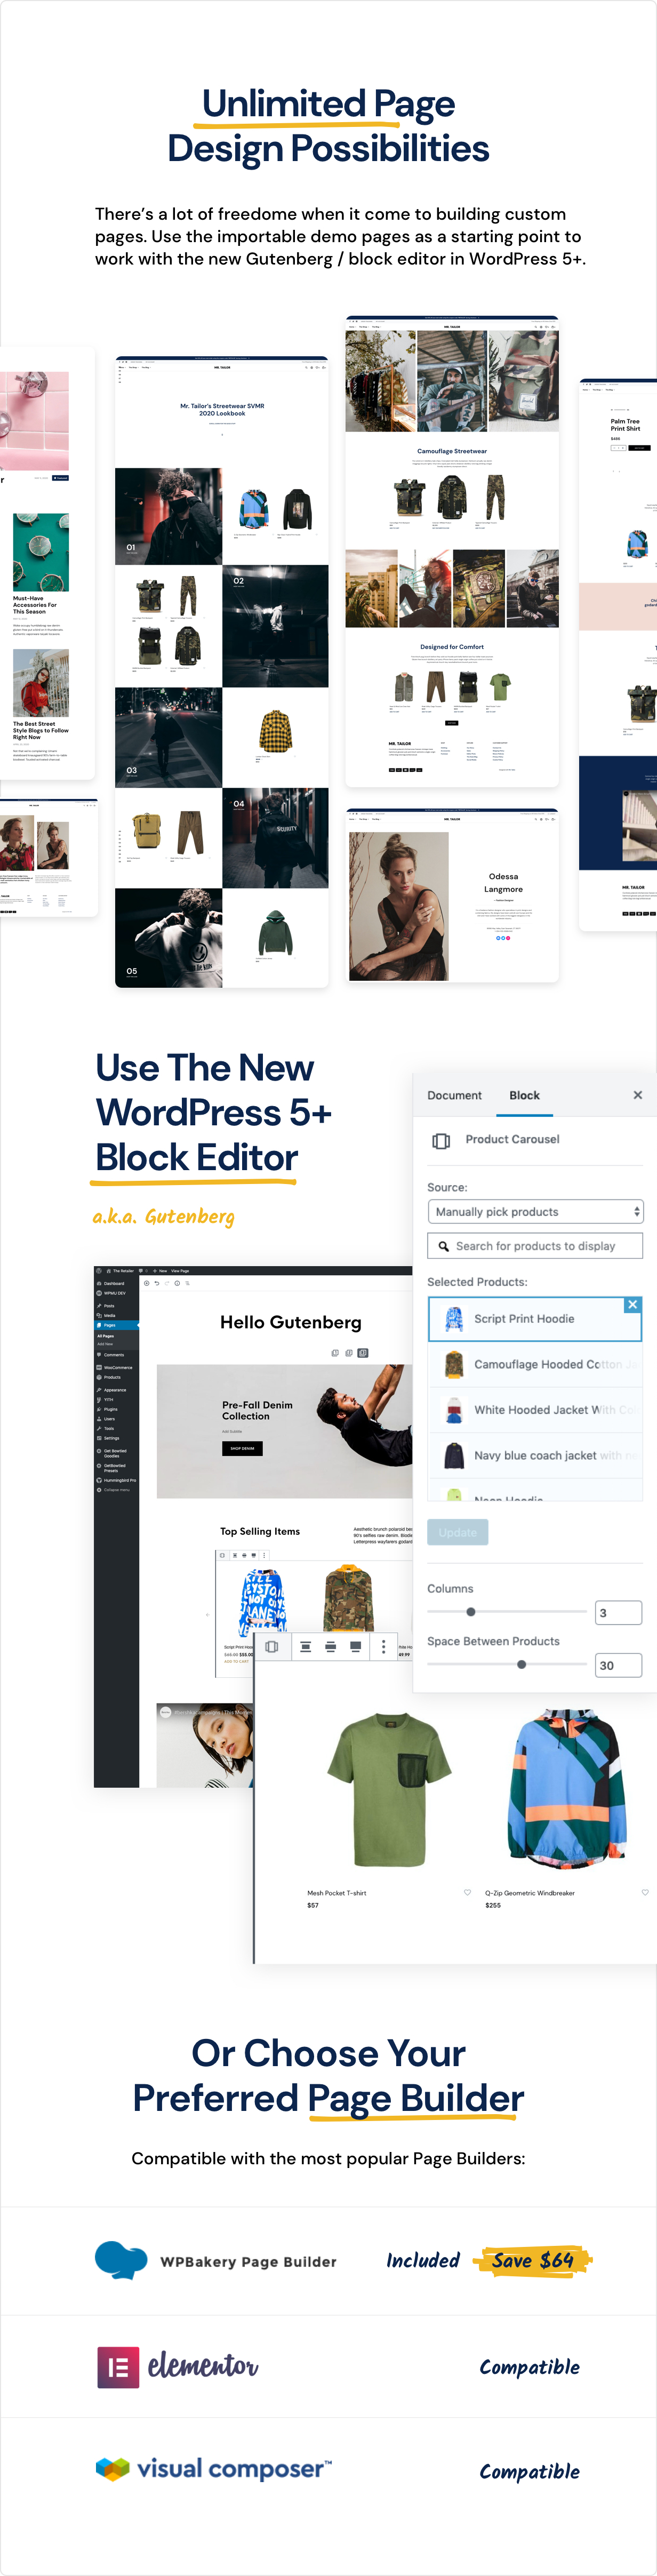 page building - Mr. Tailor - eCommerce WordPress Theme for WooCommerce